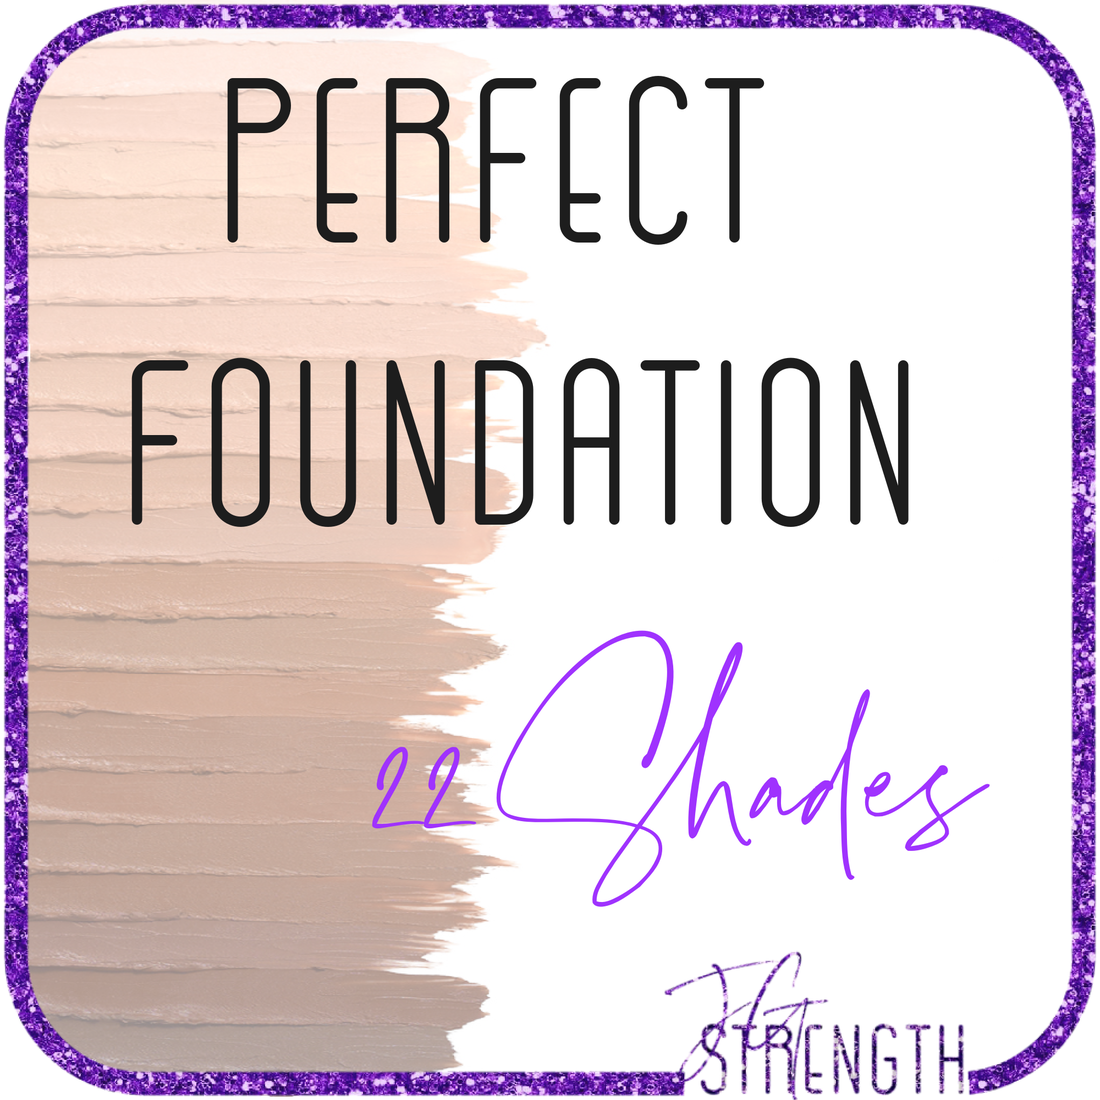 Limelife By Alcone Perfect Foundation Direct Sales Party Plan And Network Marketing Companies Member Article By Jennifer Grosvold